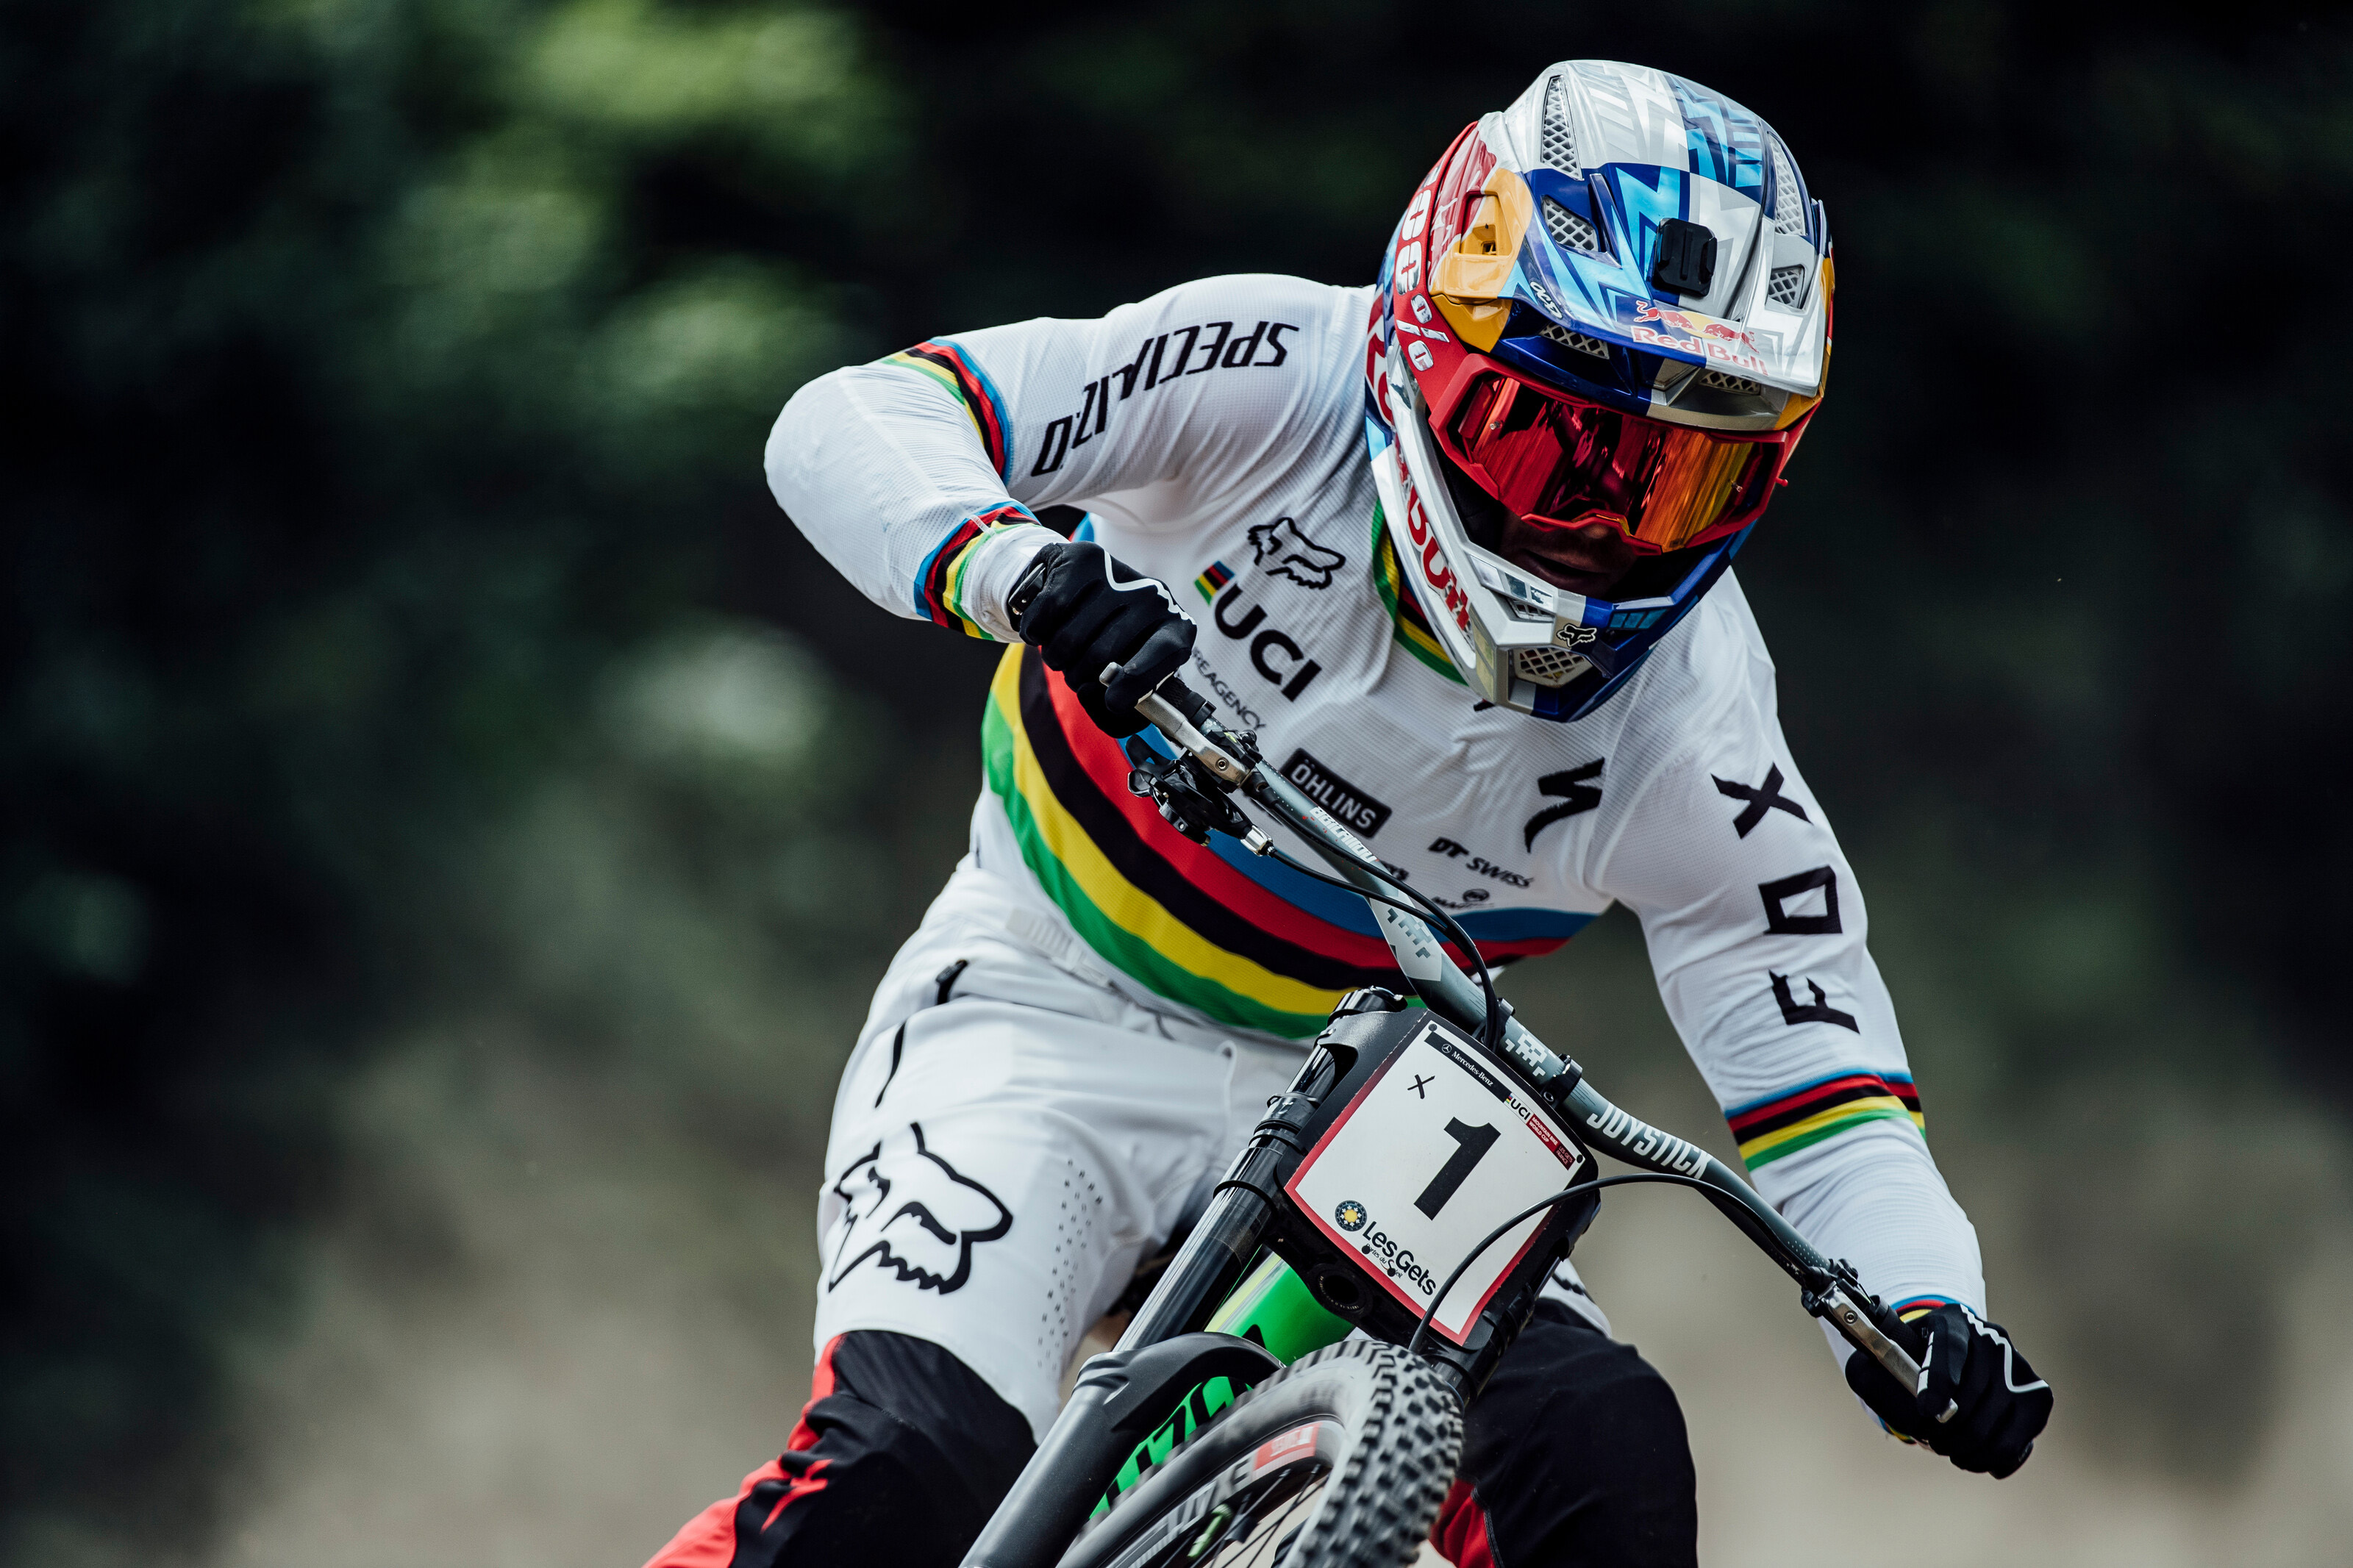 The Moments That Make a World Cup | Loic Bruni in Les Gets 2019 - [R